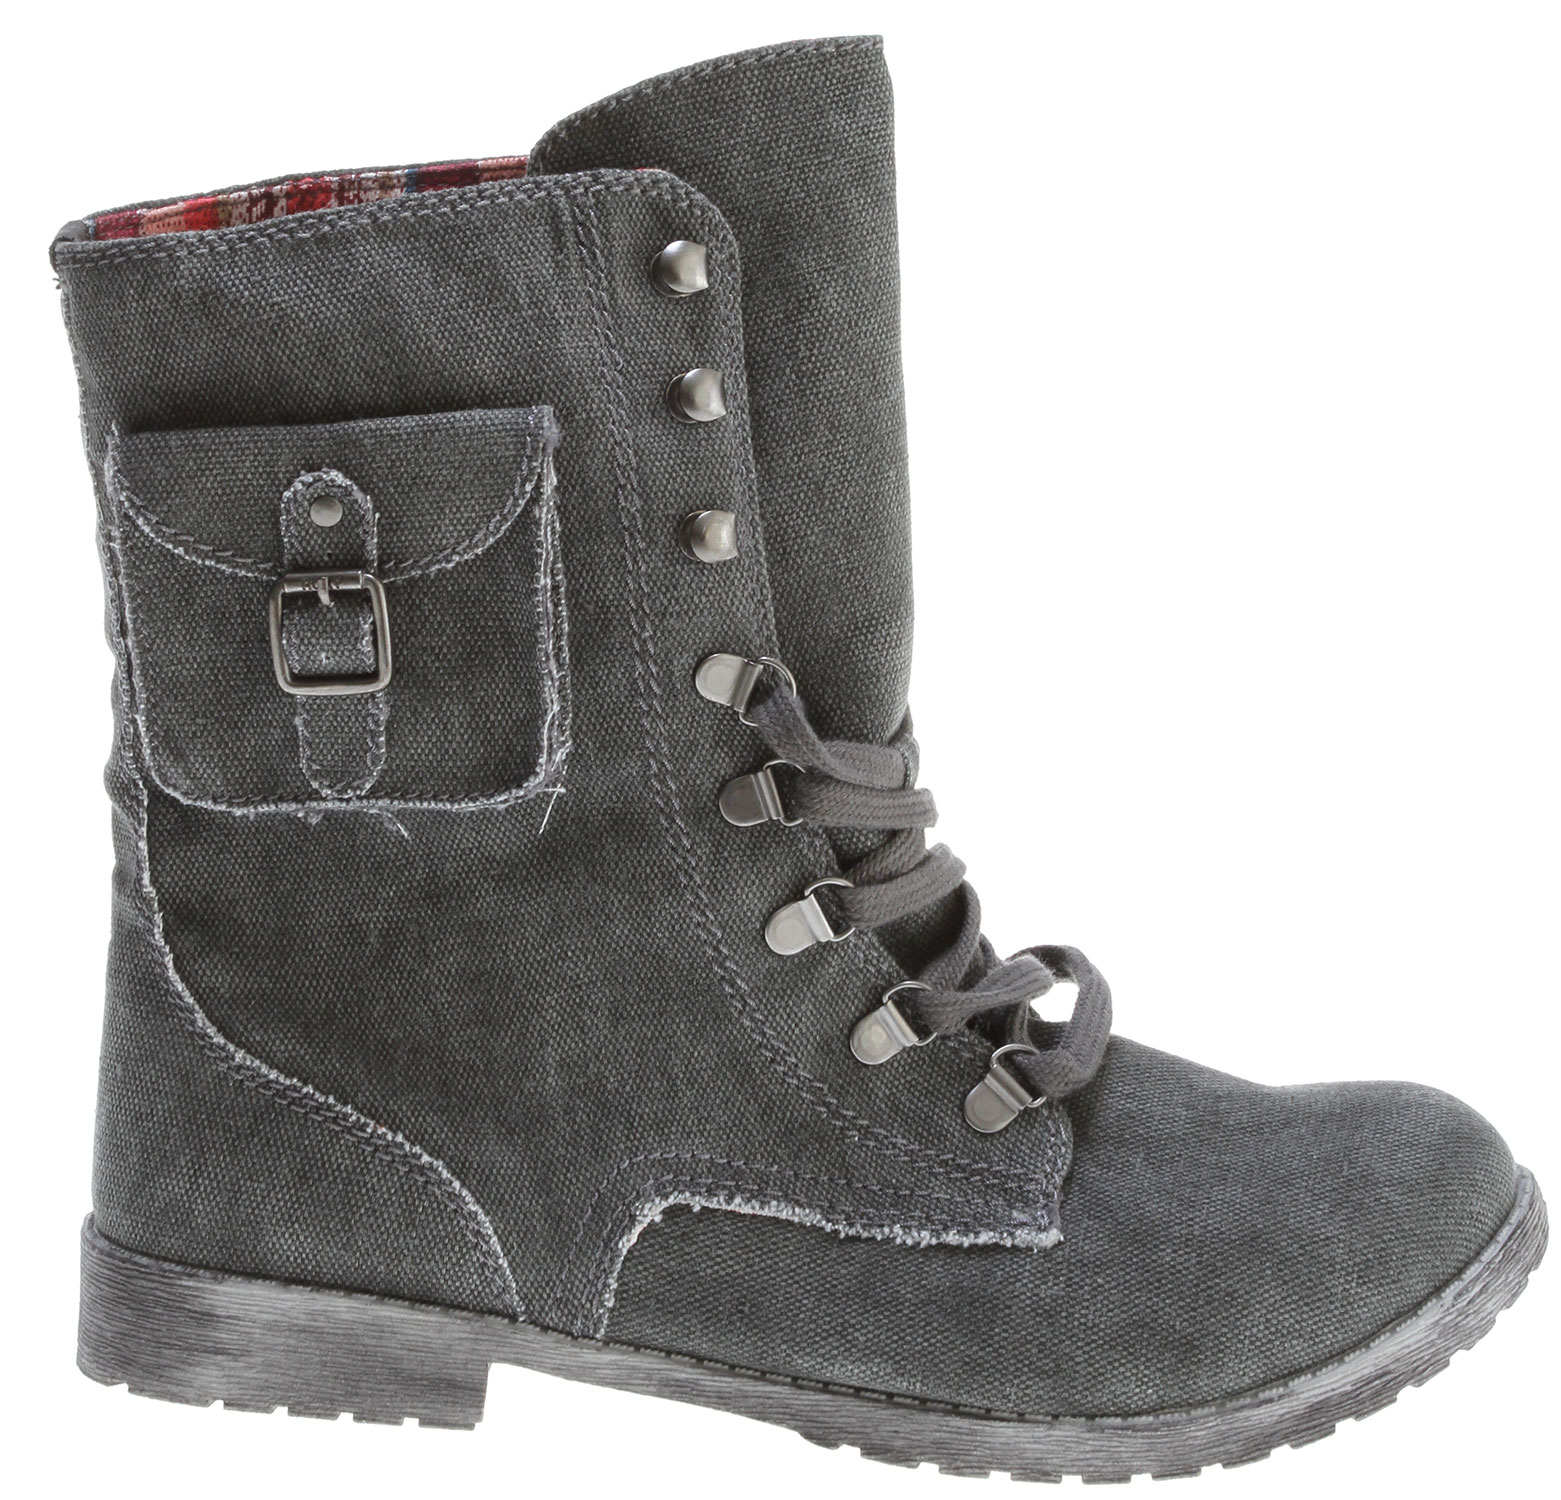 Surf Key Features of the Roxy Ponderosa Boots : Enzyme washed canvas upper with pocket detail Soft cotton laces with metal hardware Woven logo flag Canvas lining Flexible TPR injected lug outsole - $44.95